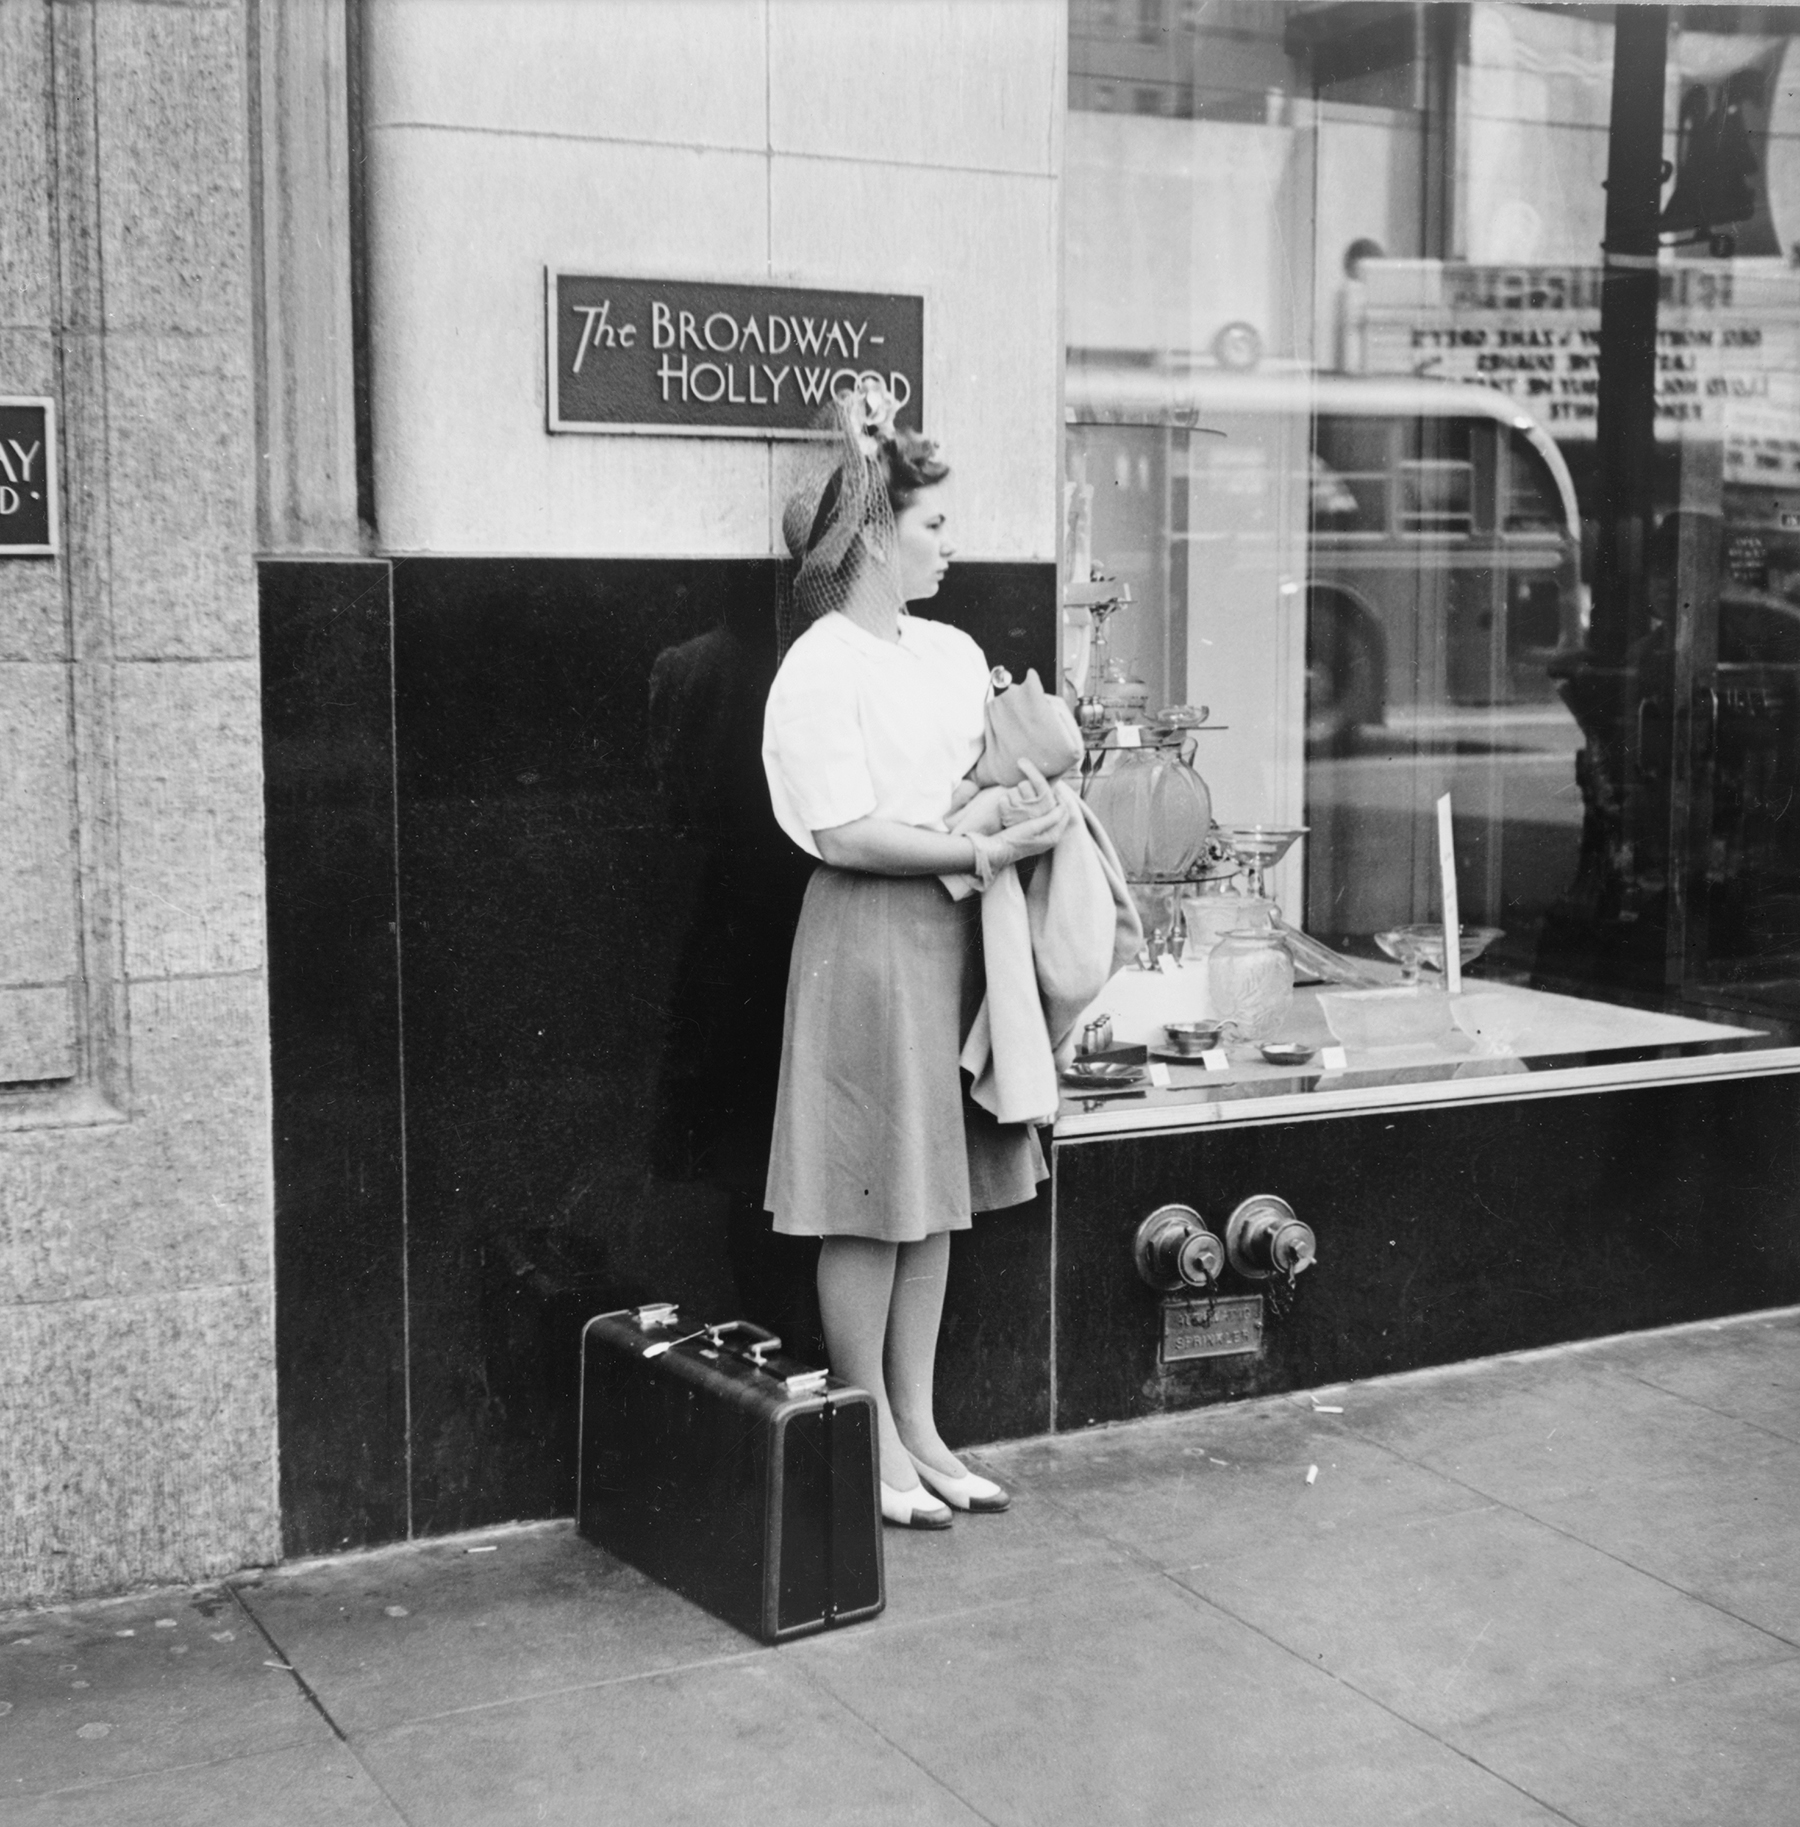 a young woman waits on hollywood boulevard with her suitcase